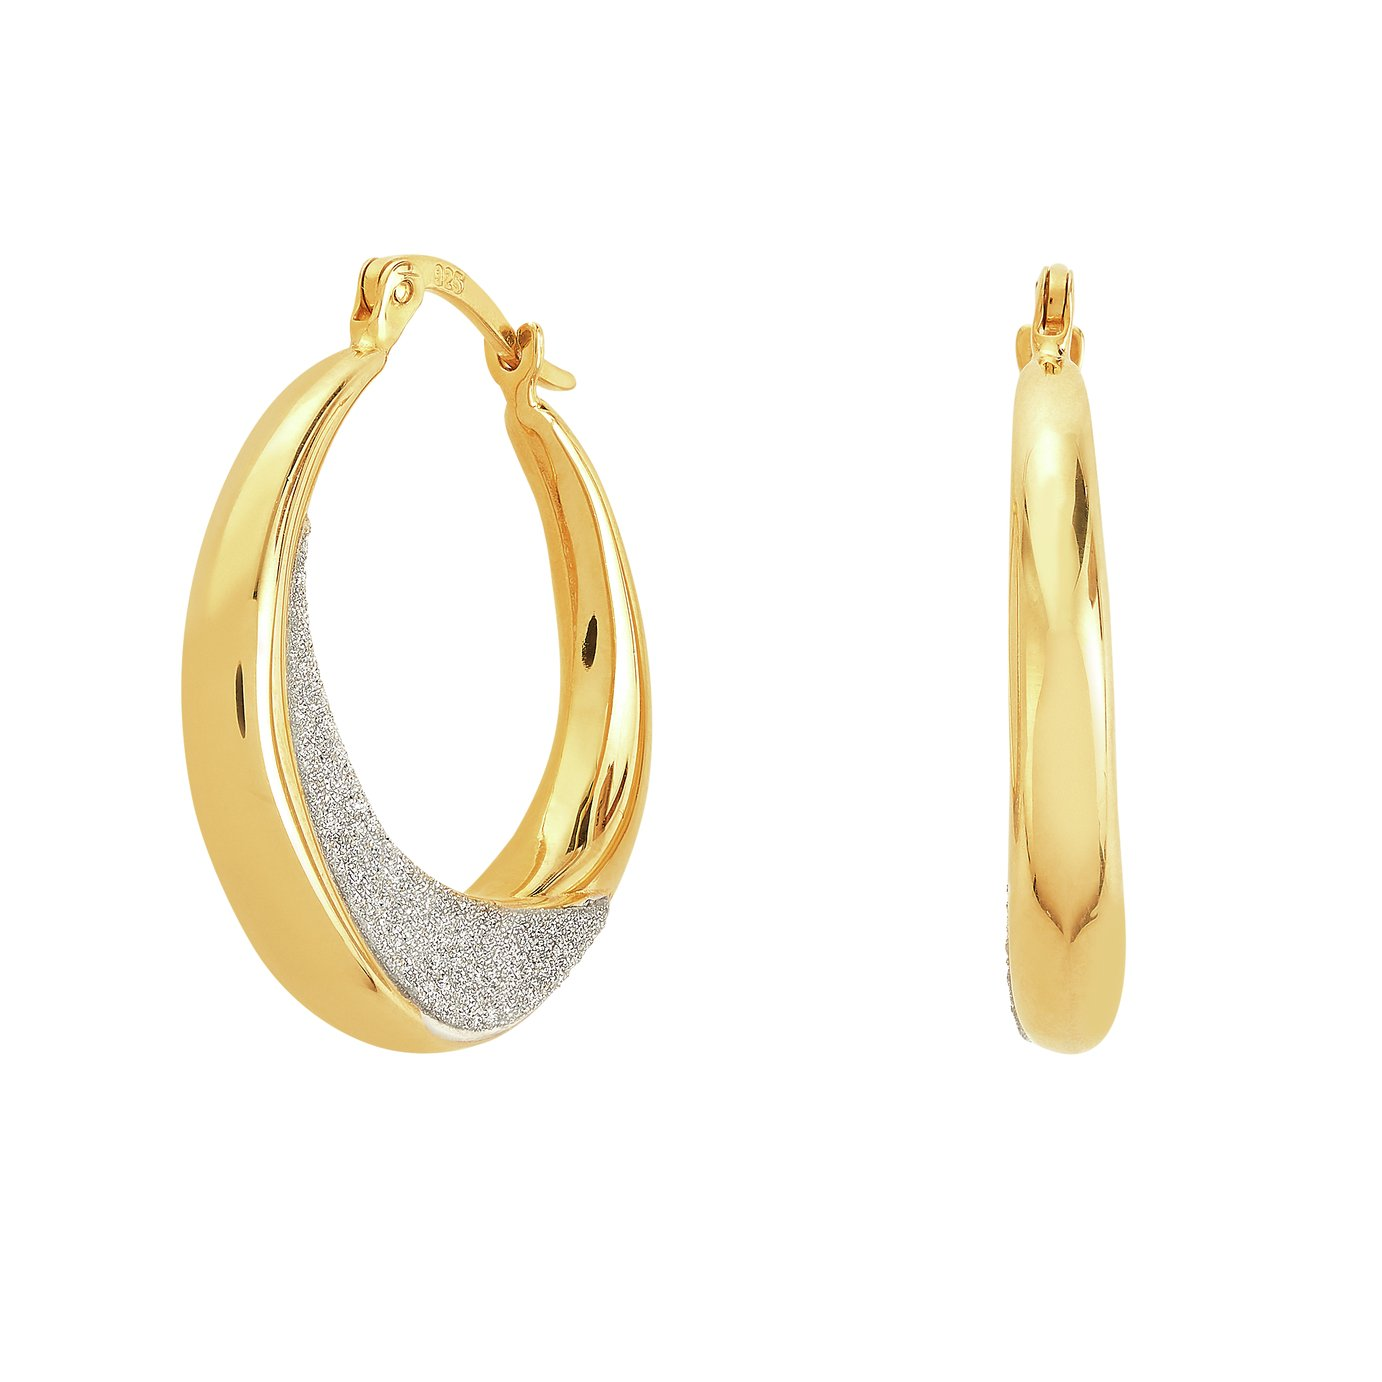 Revere 9ct Gold Plated Sterling Silver Creole Earrings